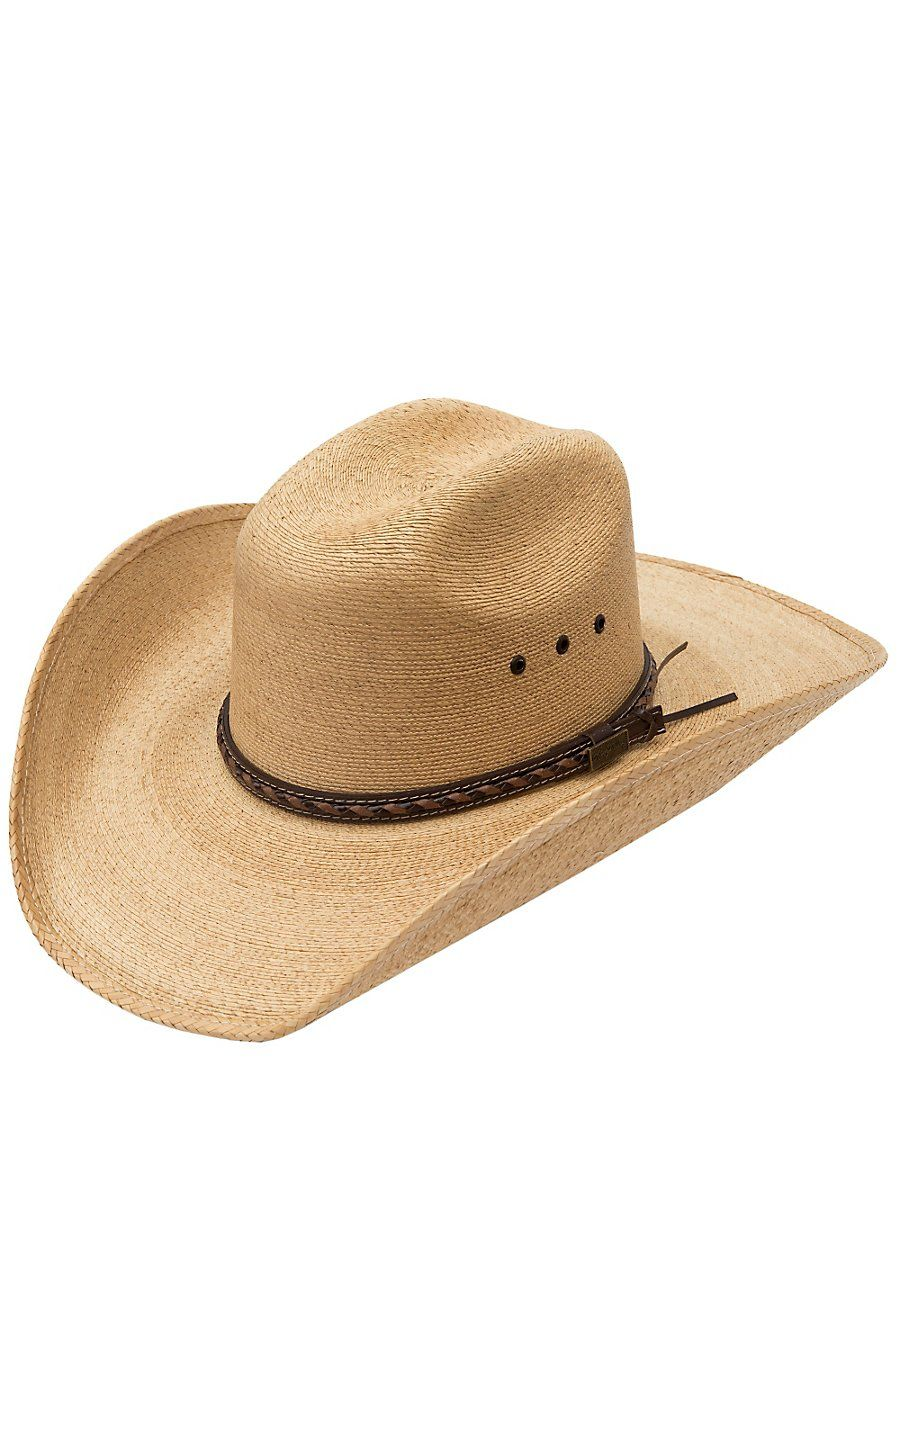 Larry Mahan® 30X Lawton Gold Palm Leaf Cowboy Hat  b6d78b6c2189